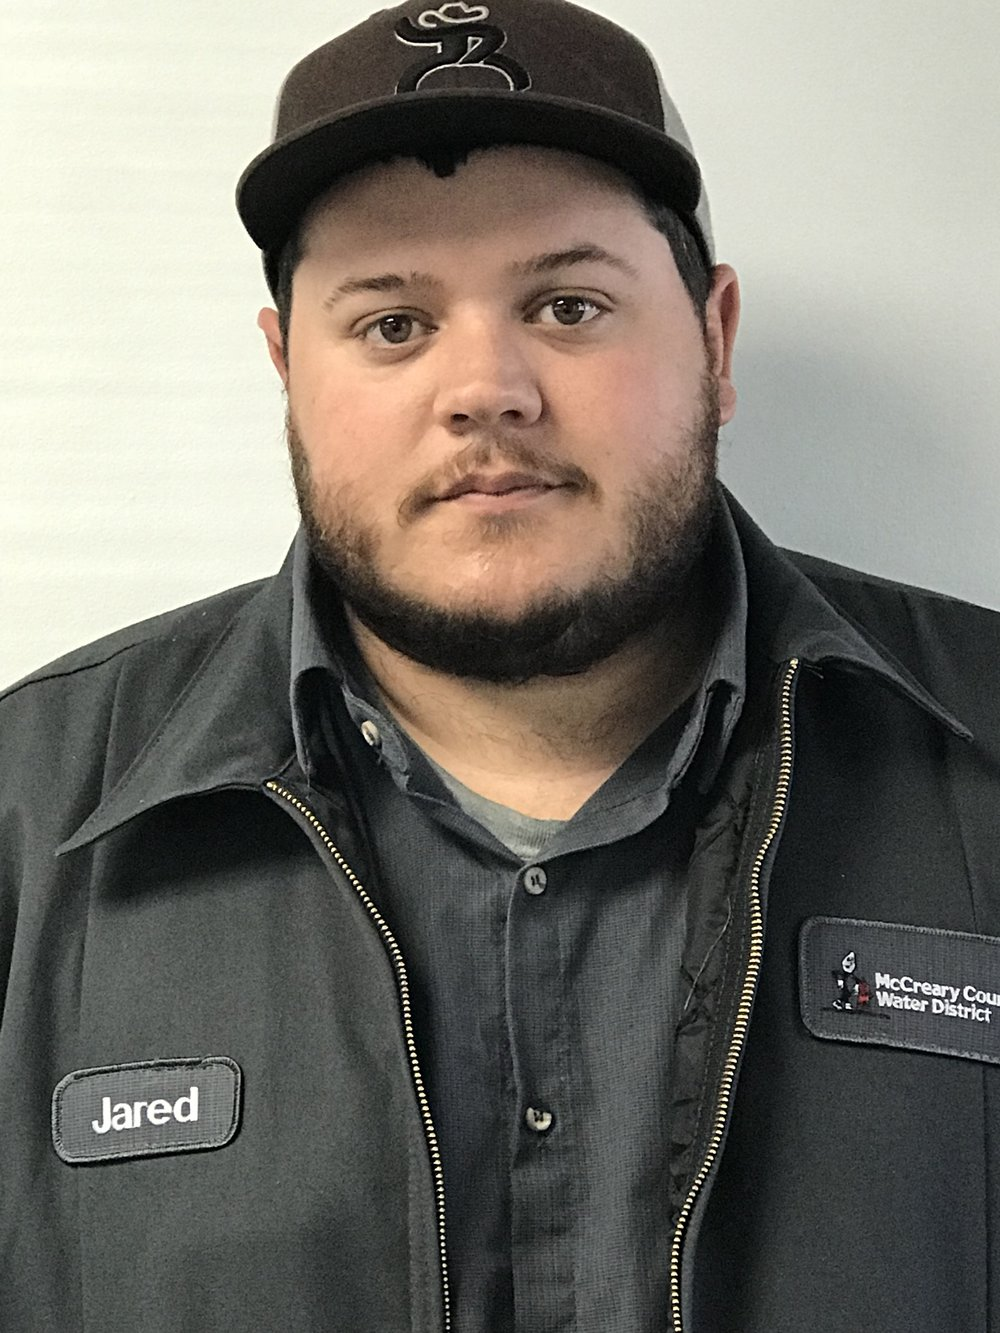 JAROD MILLER  has worked at the water district since 2004. He holds a Wastewater Collections Class II Certification.